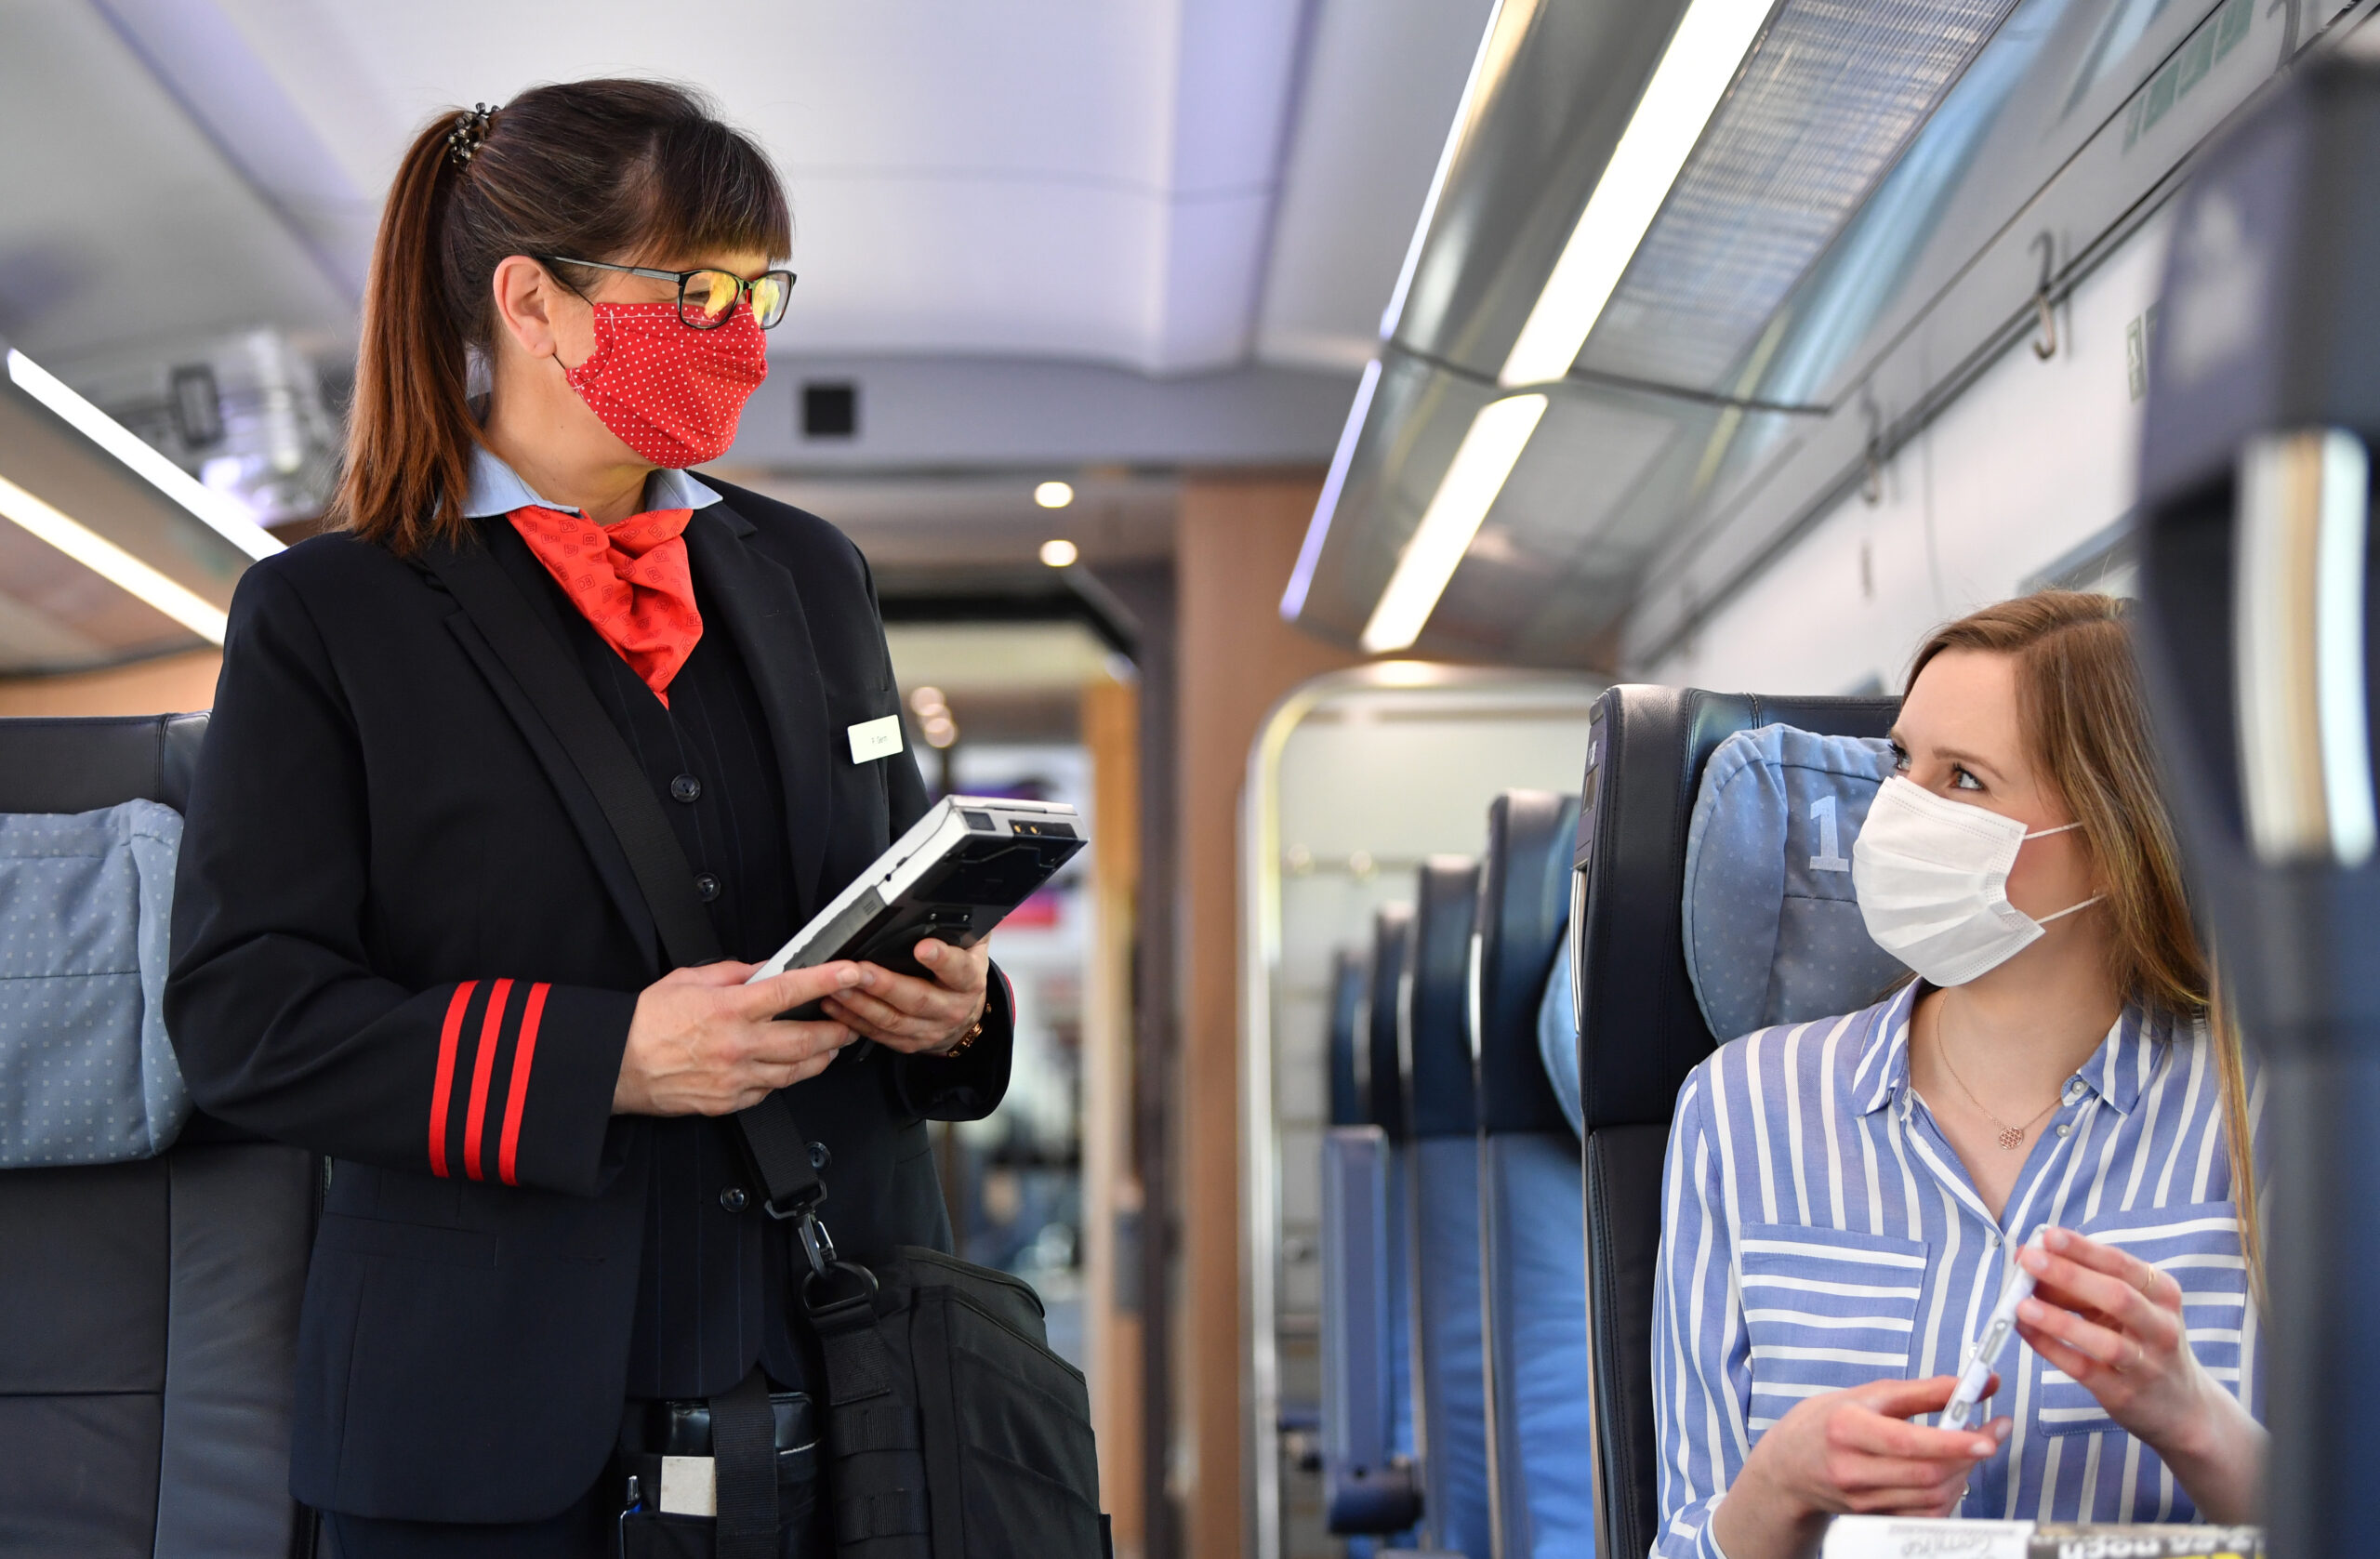 Contactless ticket check: staff and passengers wear masks during the coronavirus pandemic